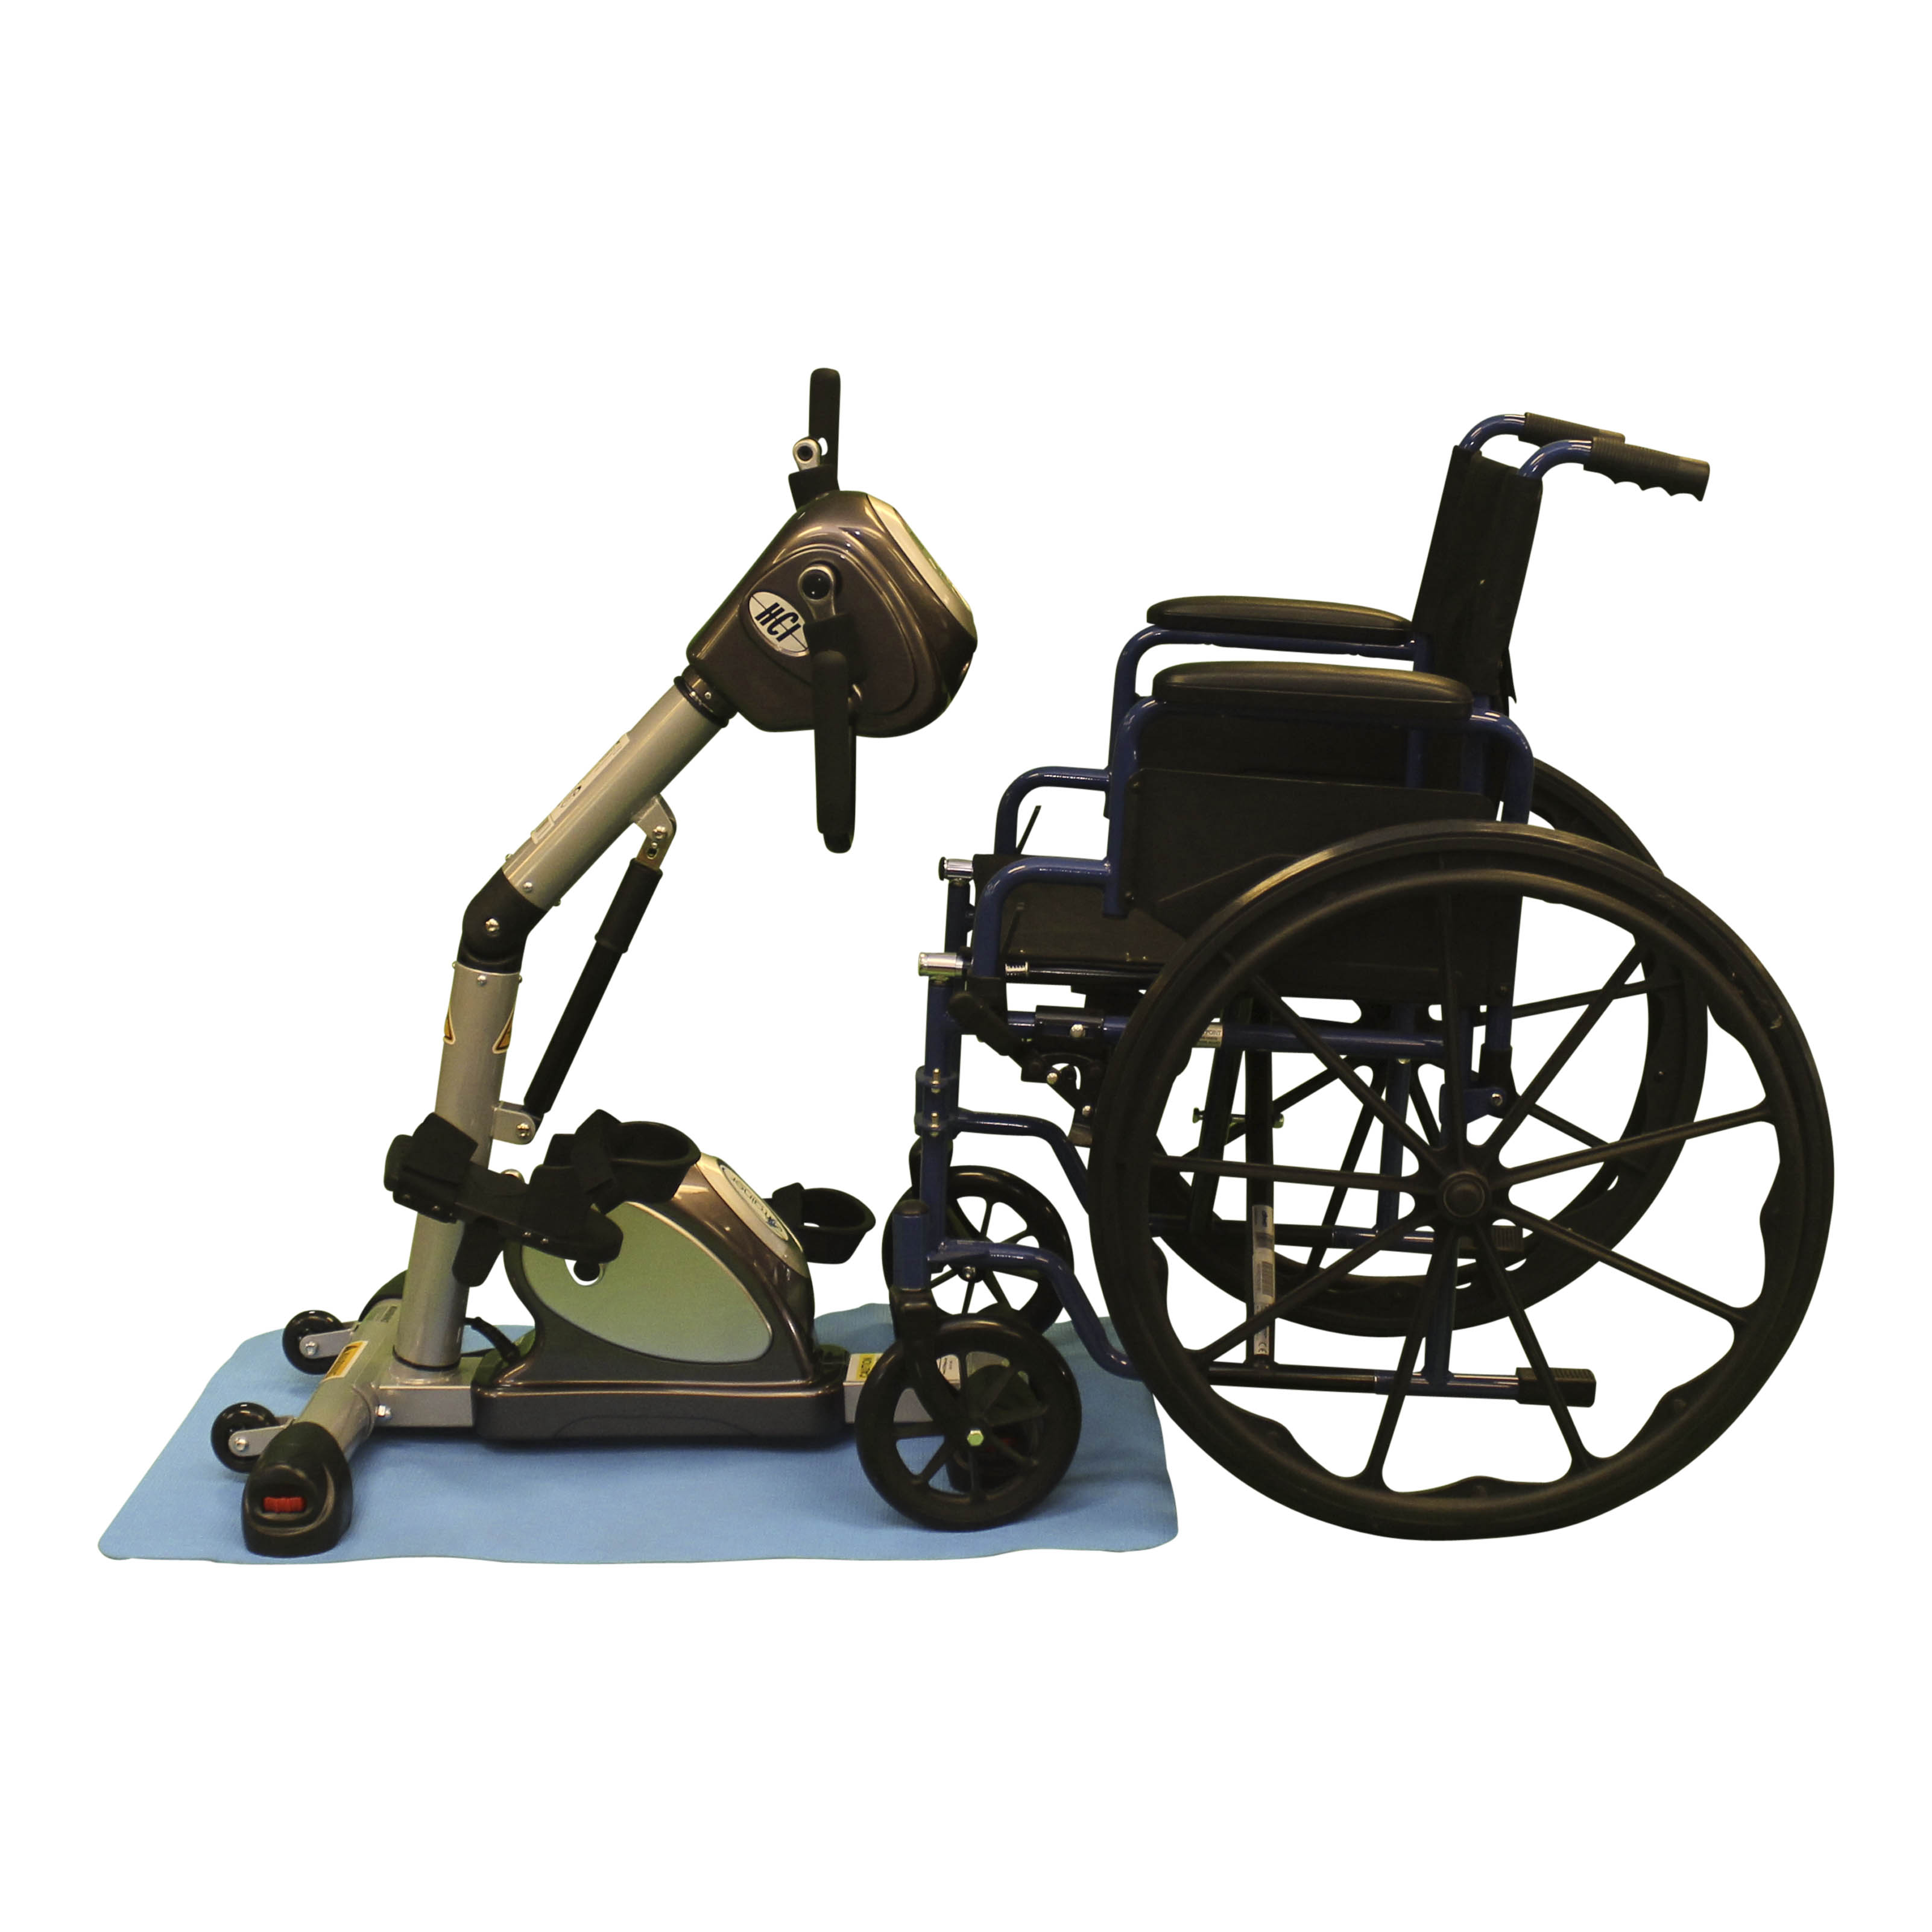 eTrainer Active Passive Trainer for use with wheelchair